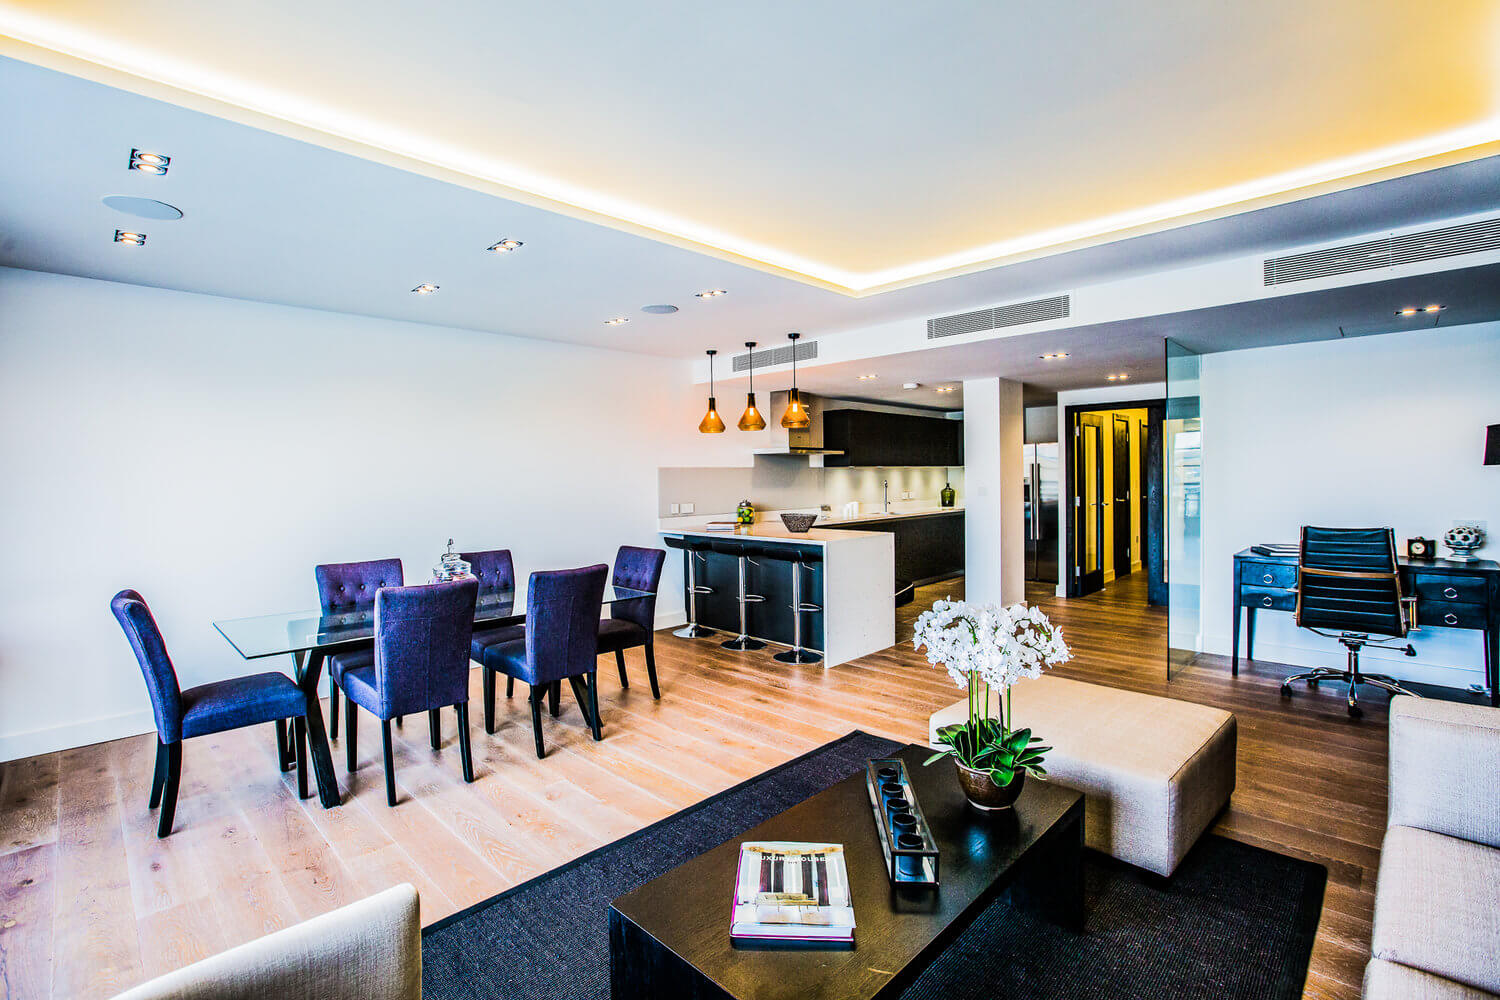 Modern, sleek apartment with bright white LED Strip lighting.